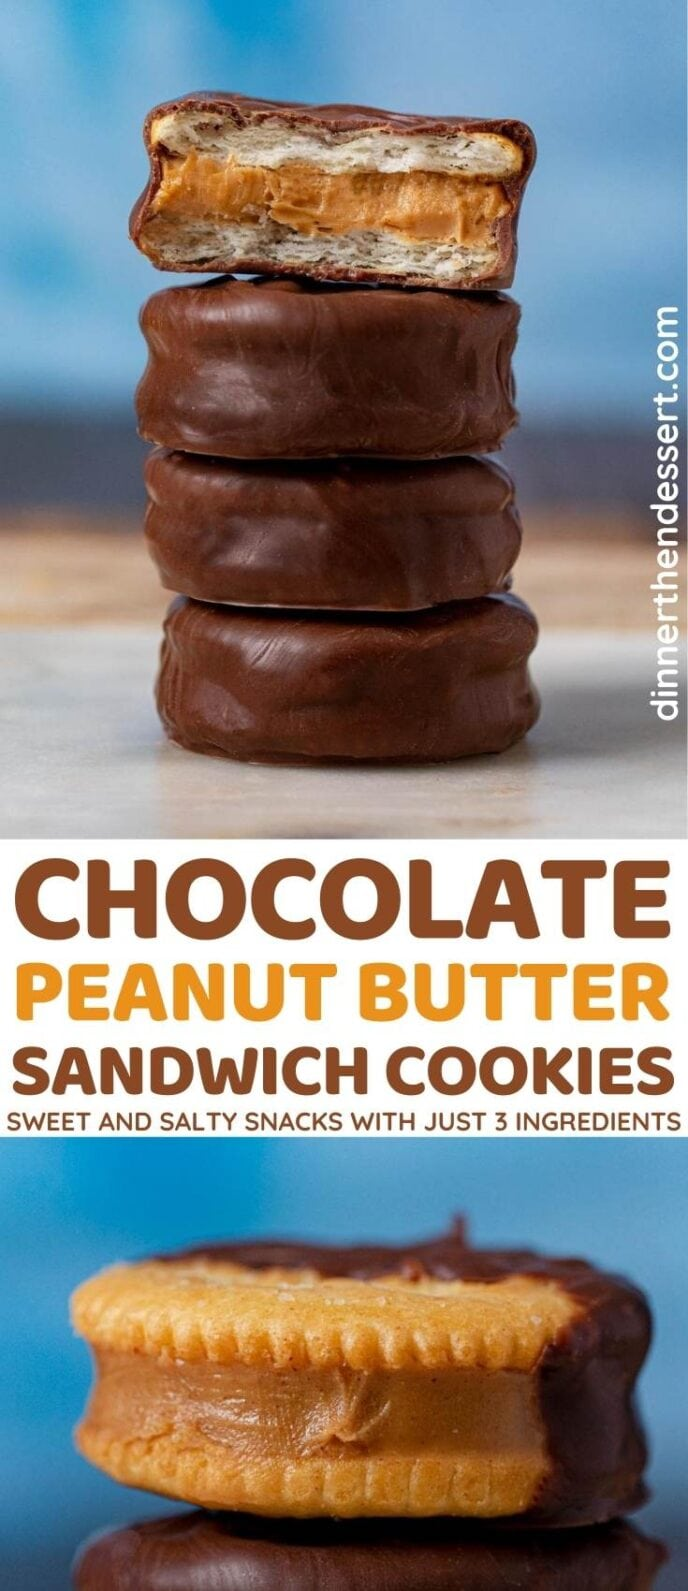 Chocolate Peanut Butter Sandwich Cookies collage